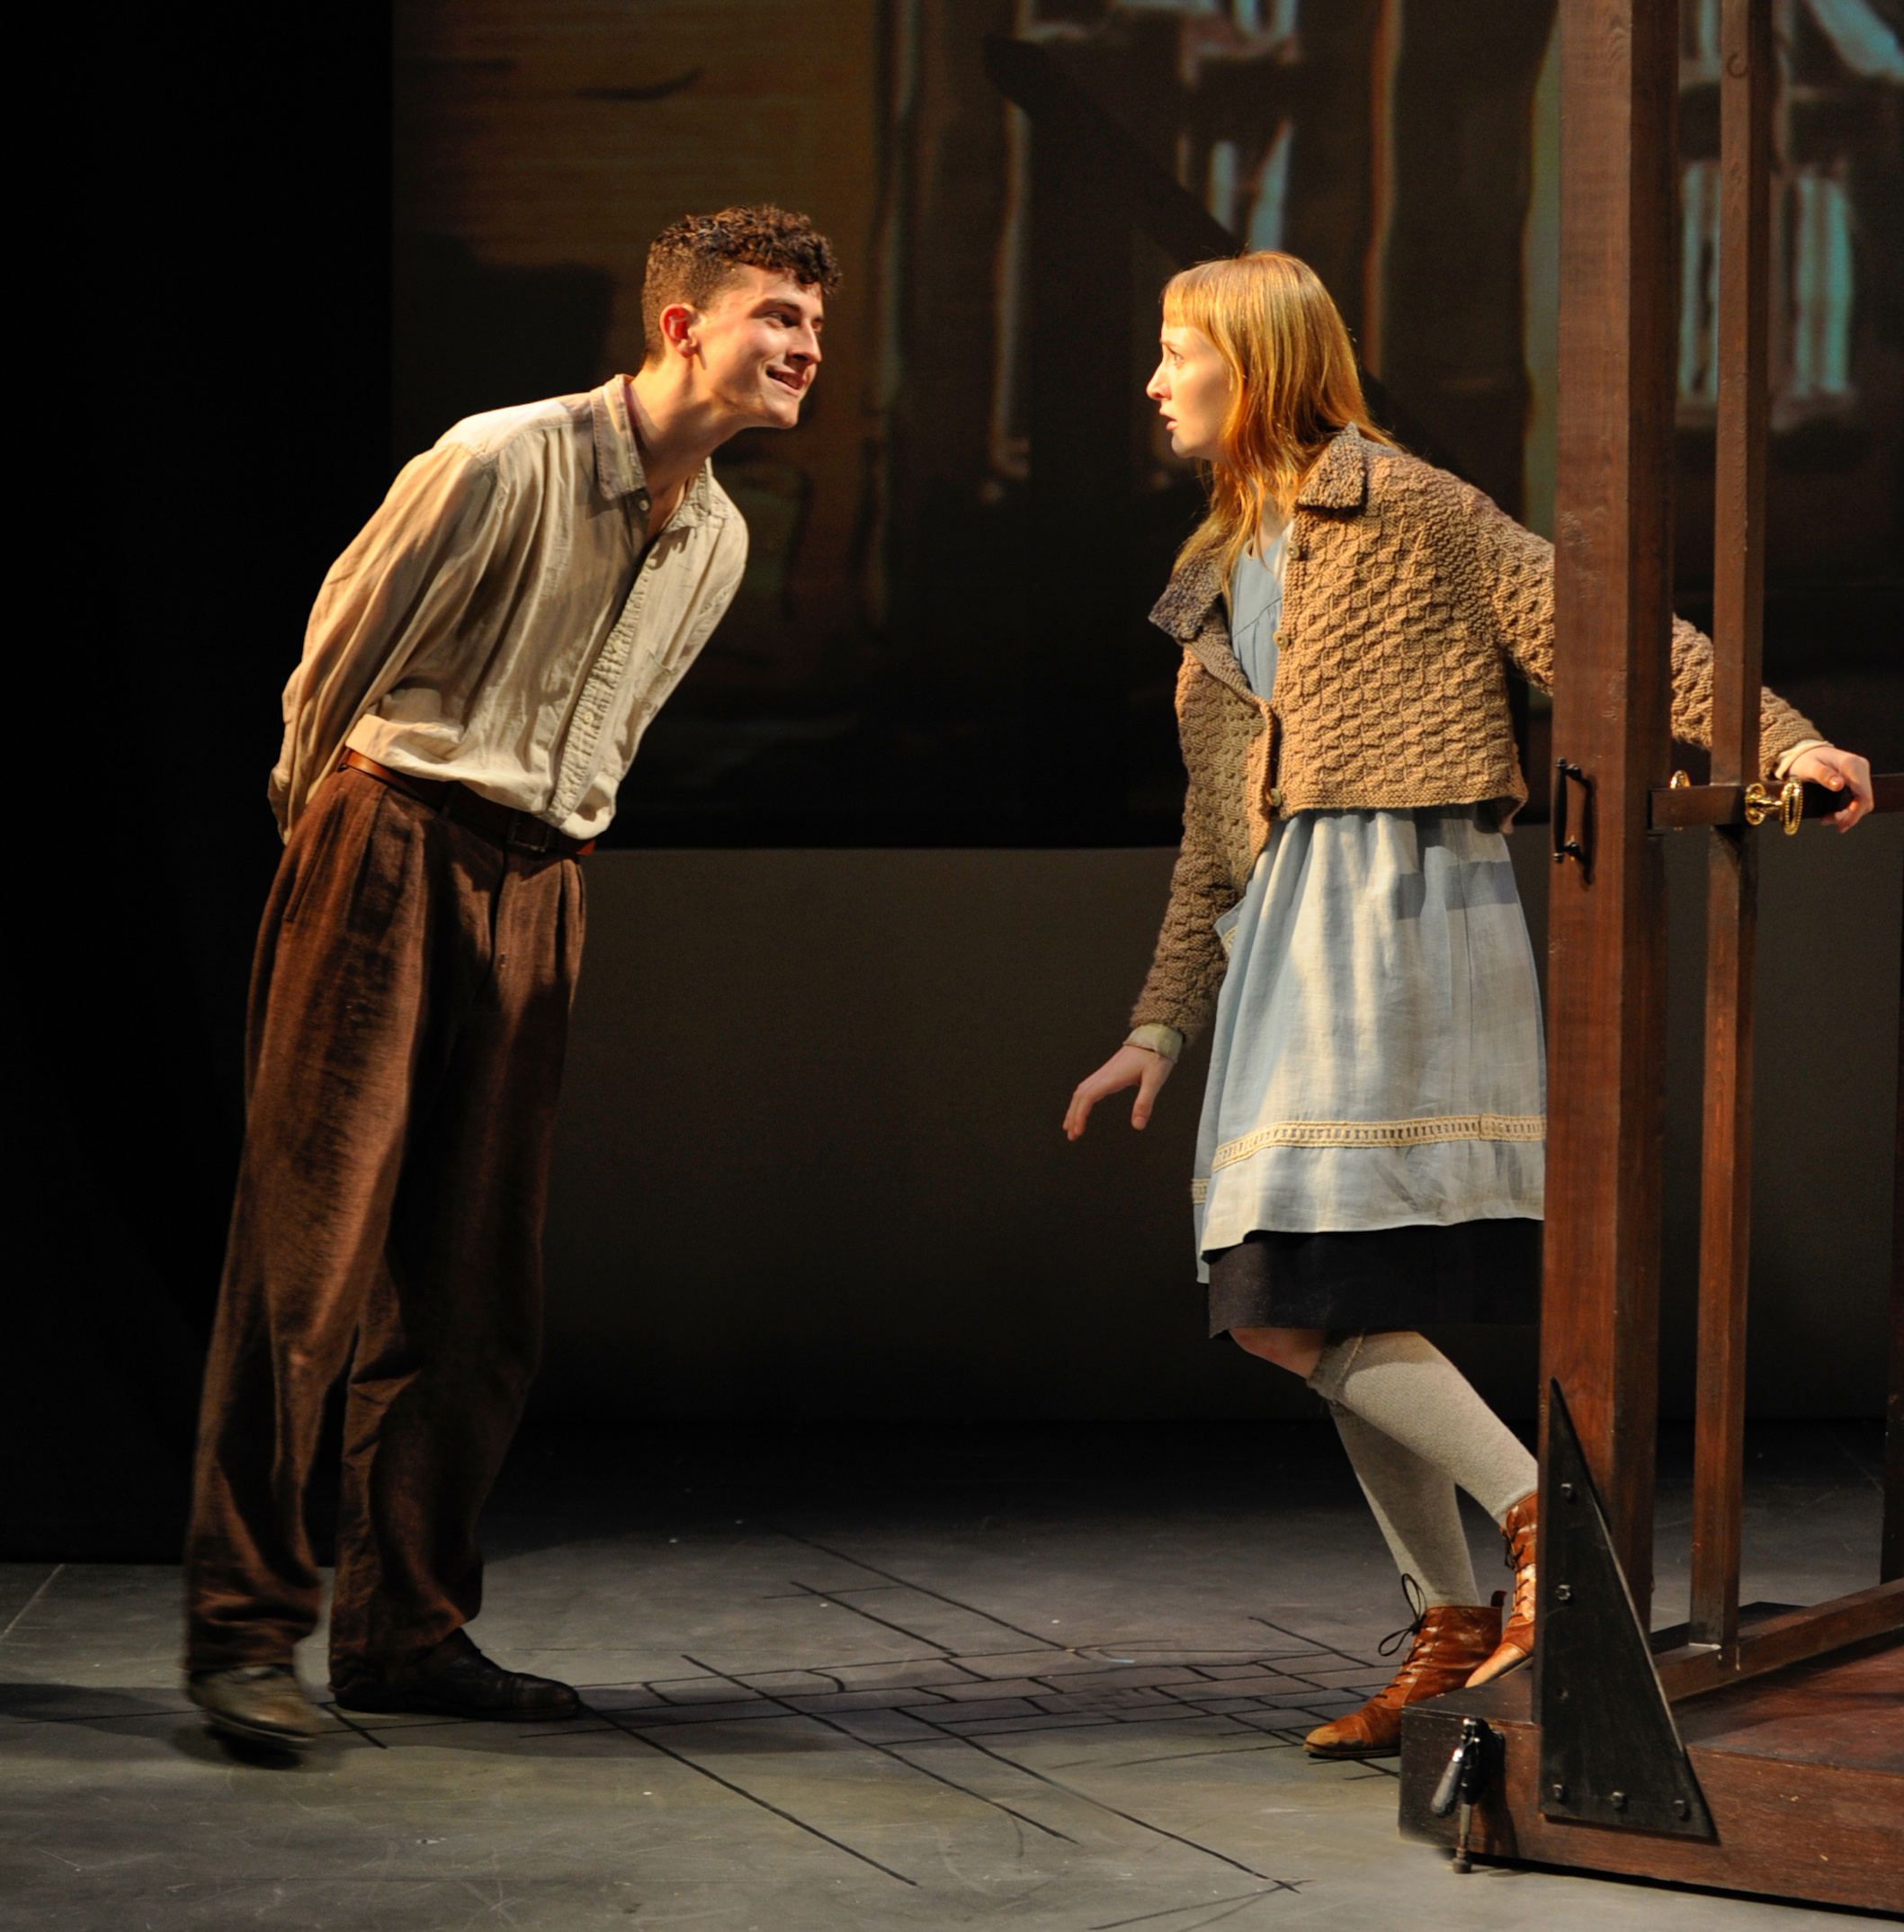 chicago theater review the book thief steppenwolf tony frankel s stage and cinema review of the book thief at steppenwolf in chicago